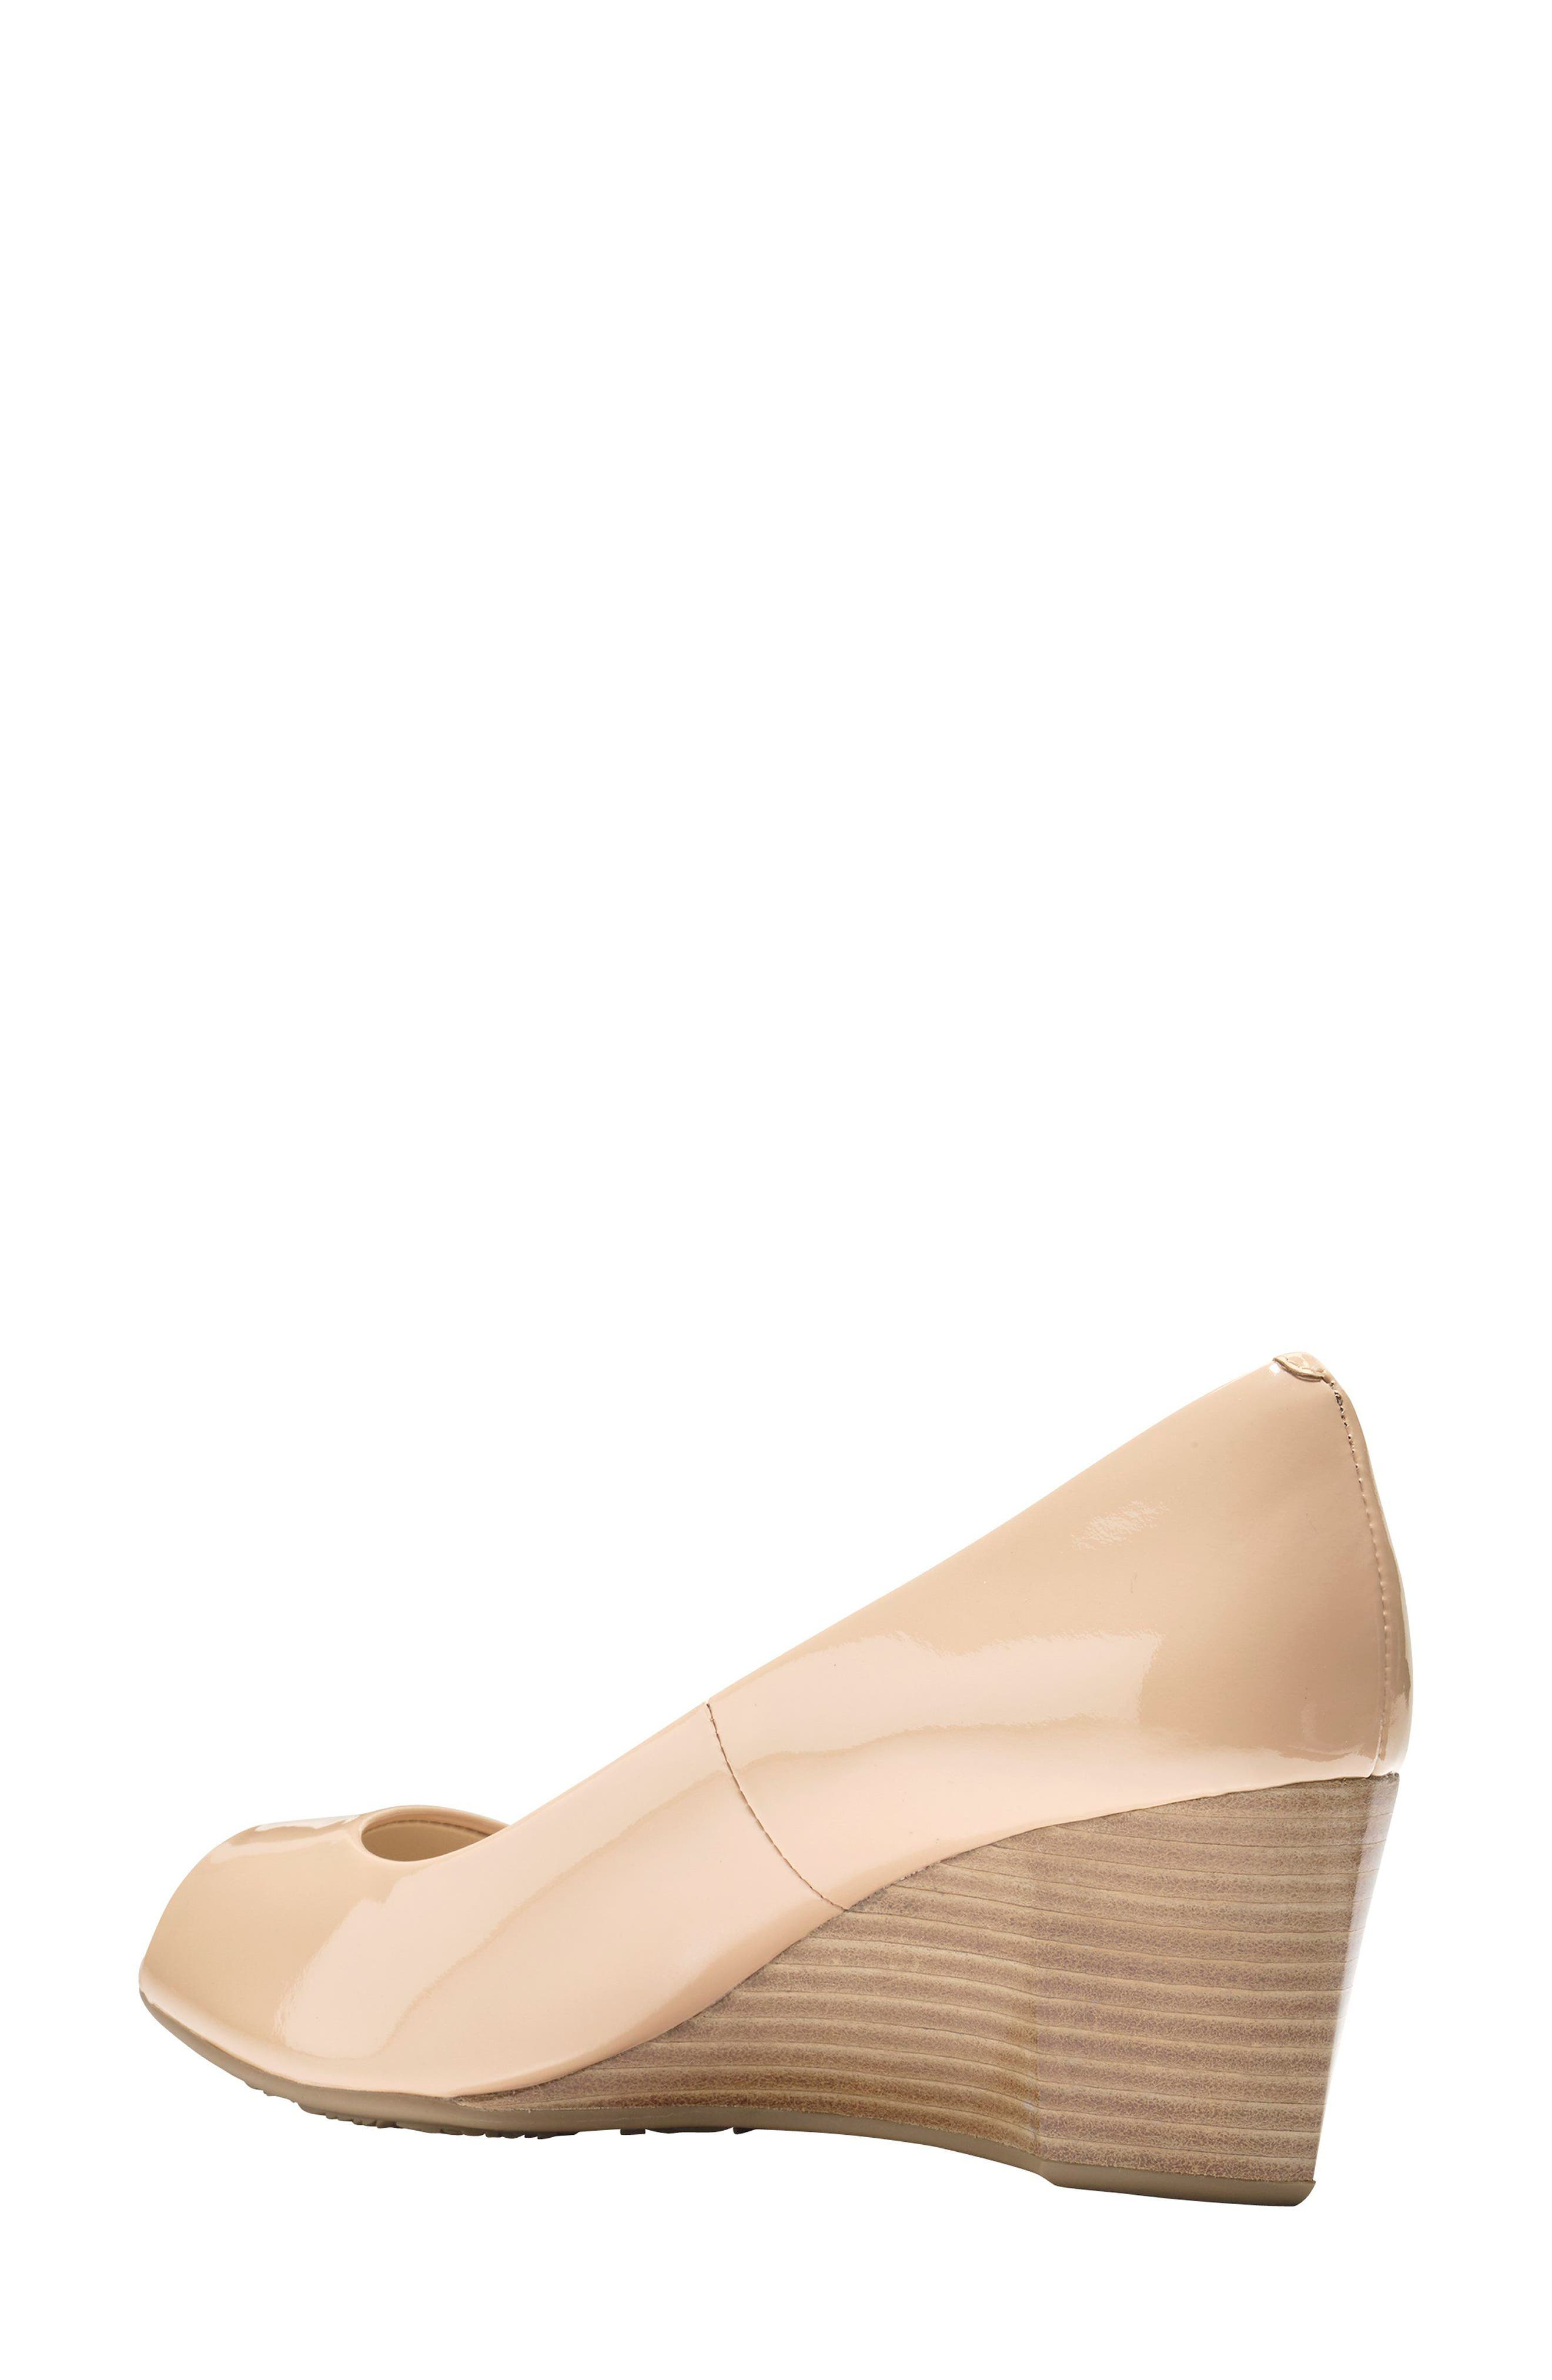 Sadie Open Toe Wedge Pump,                             Main thumbnail 1, color,                             NUDE PATENT LEATHER